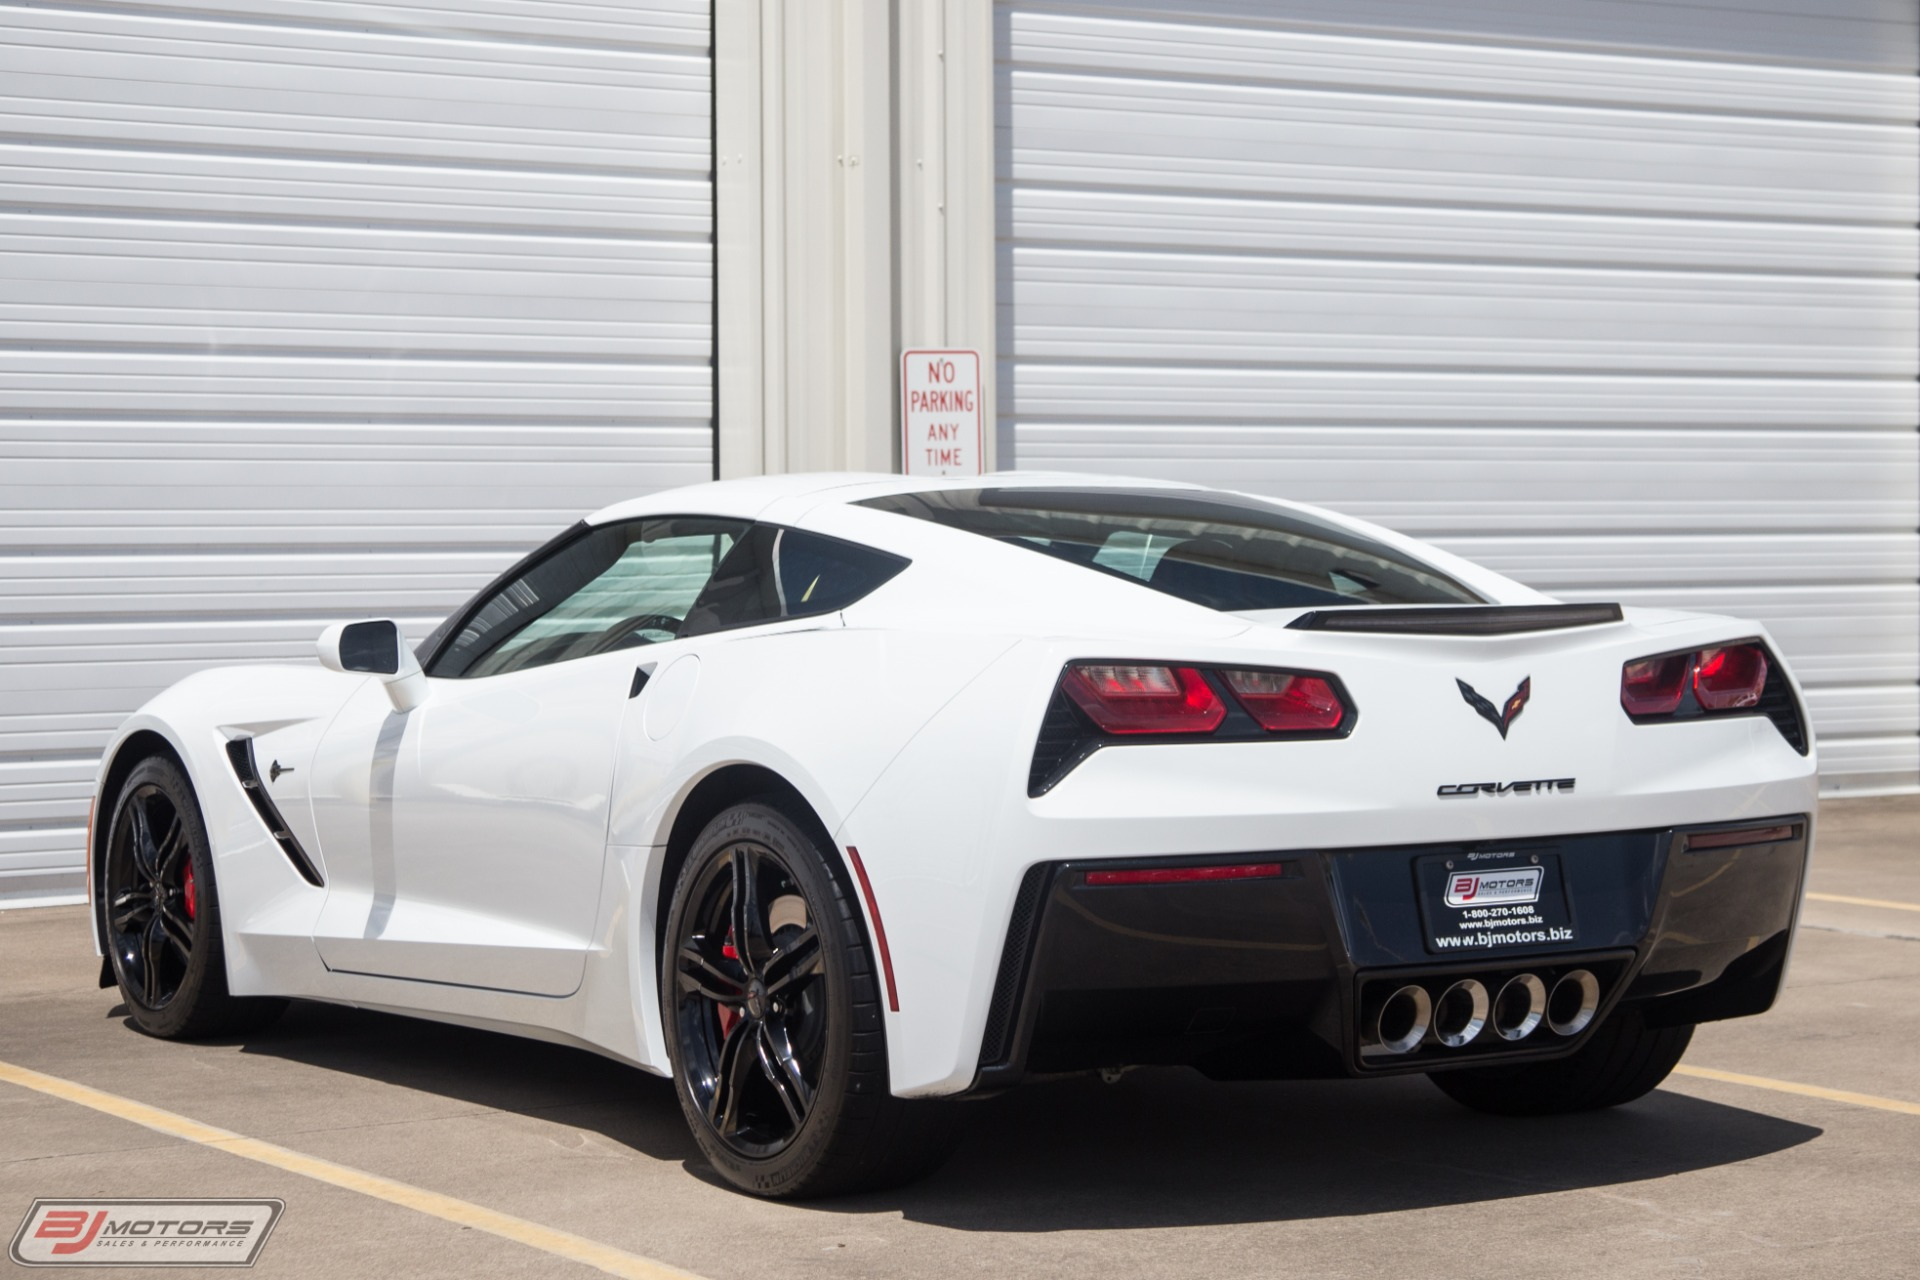 Used-2016-Chevrolet-Corvette-Stingray-Highly-Modified